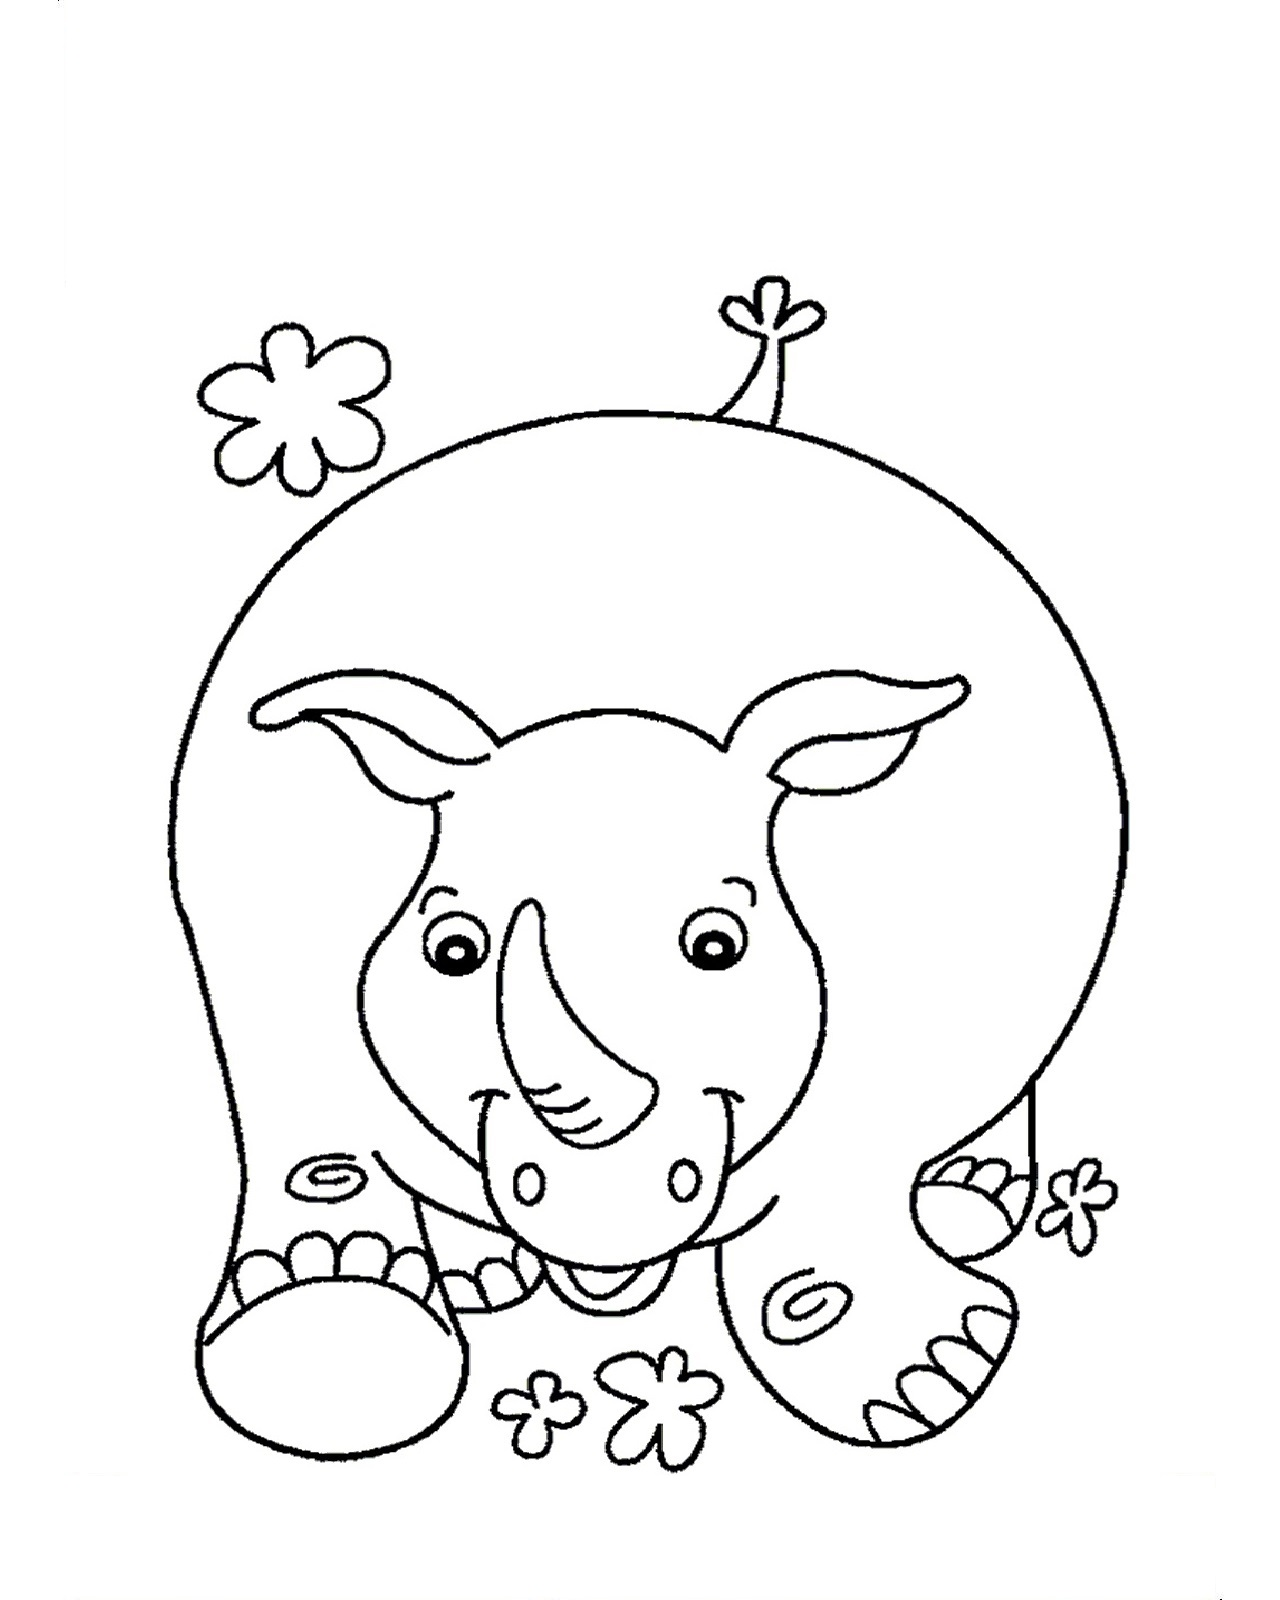 Rhino Coloring Pages For Child